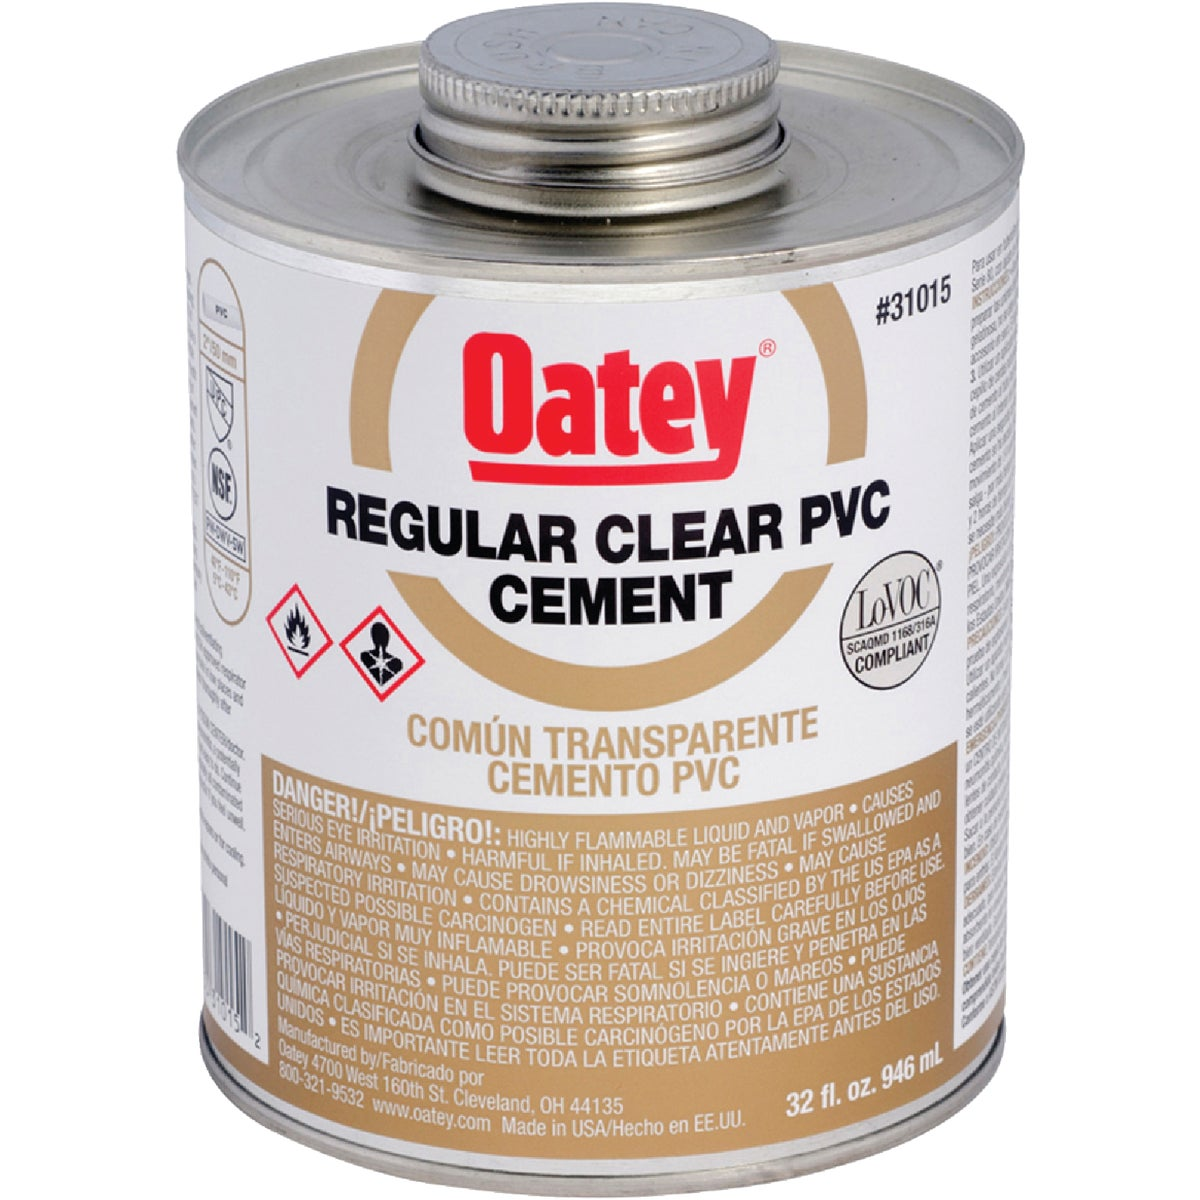 QUART PVC CEMENT - 31015 by Oatey Scs